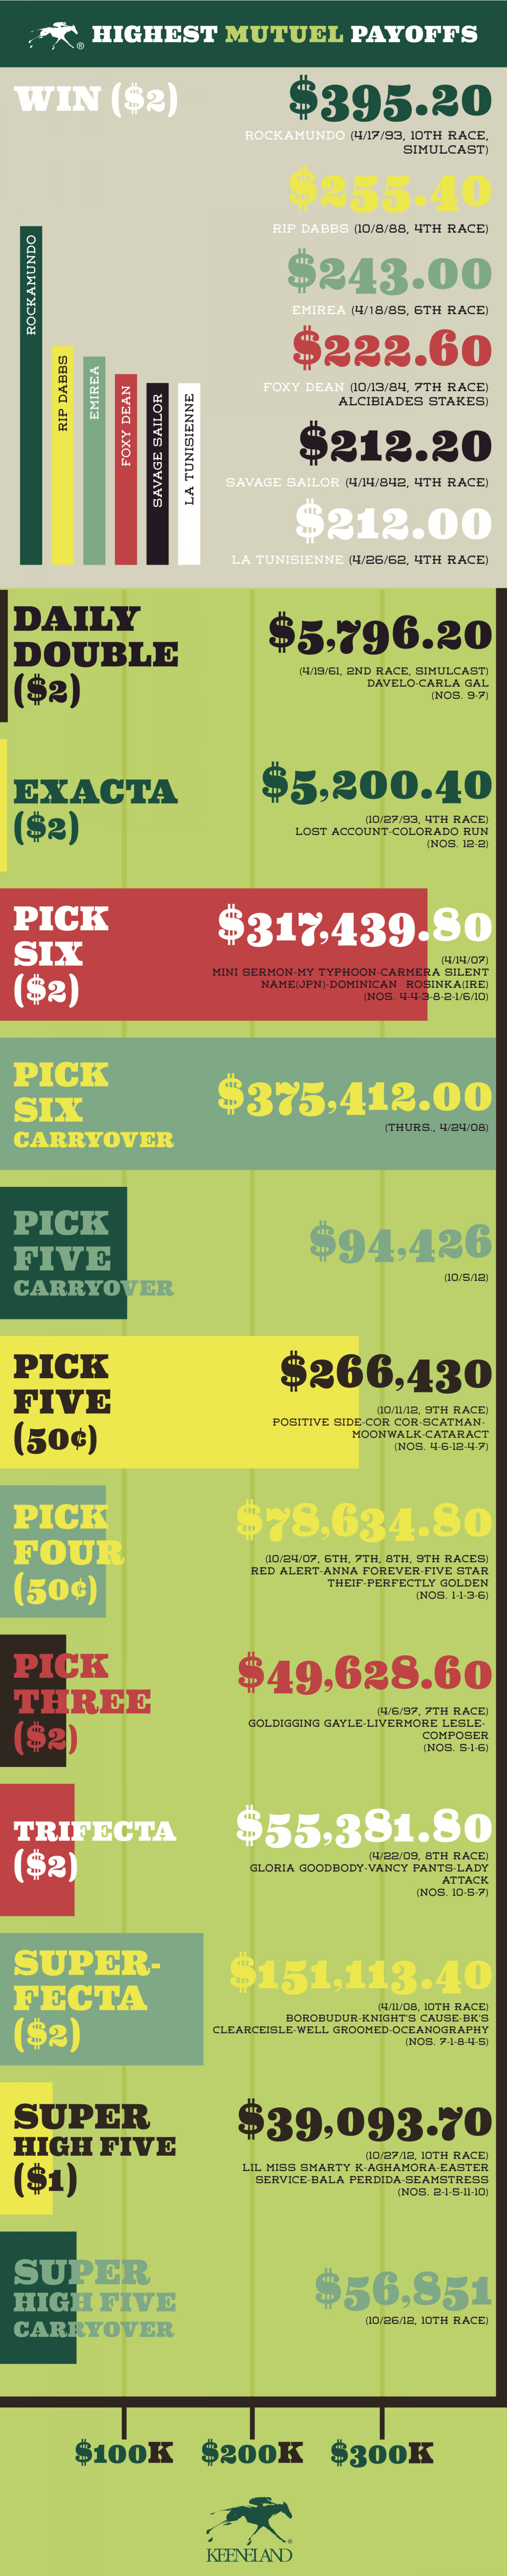 Highest Mutuel Payouts Infographic